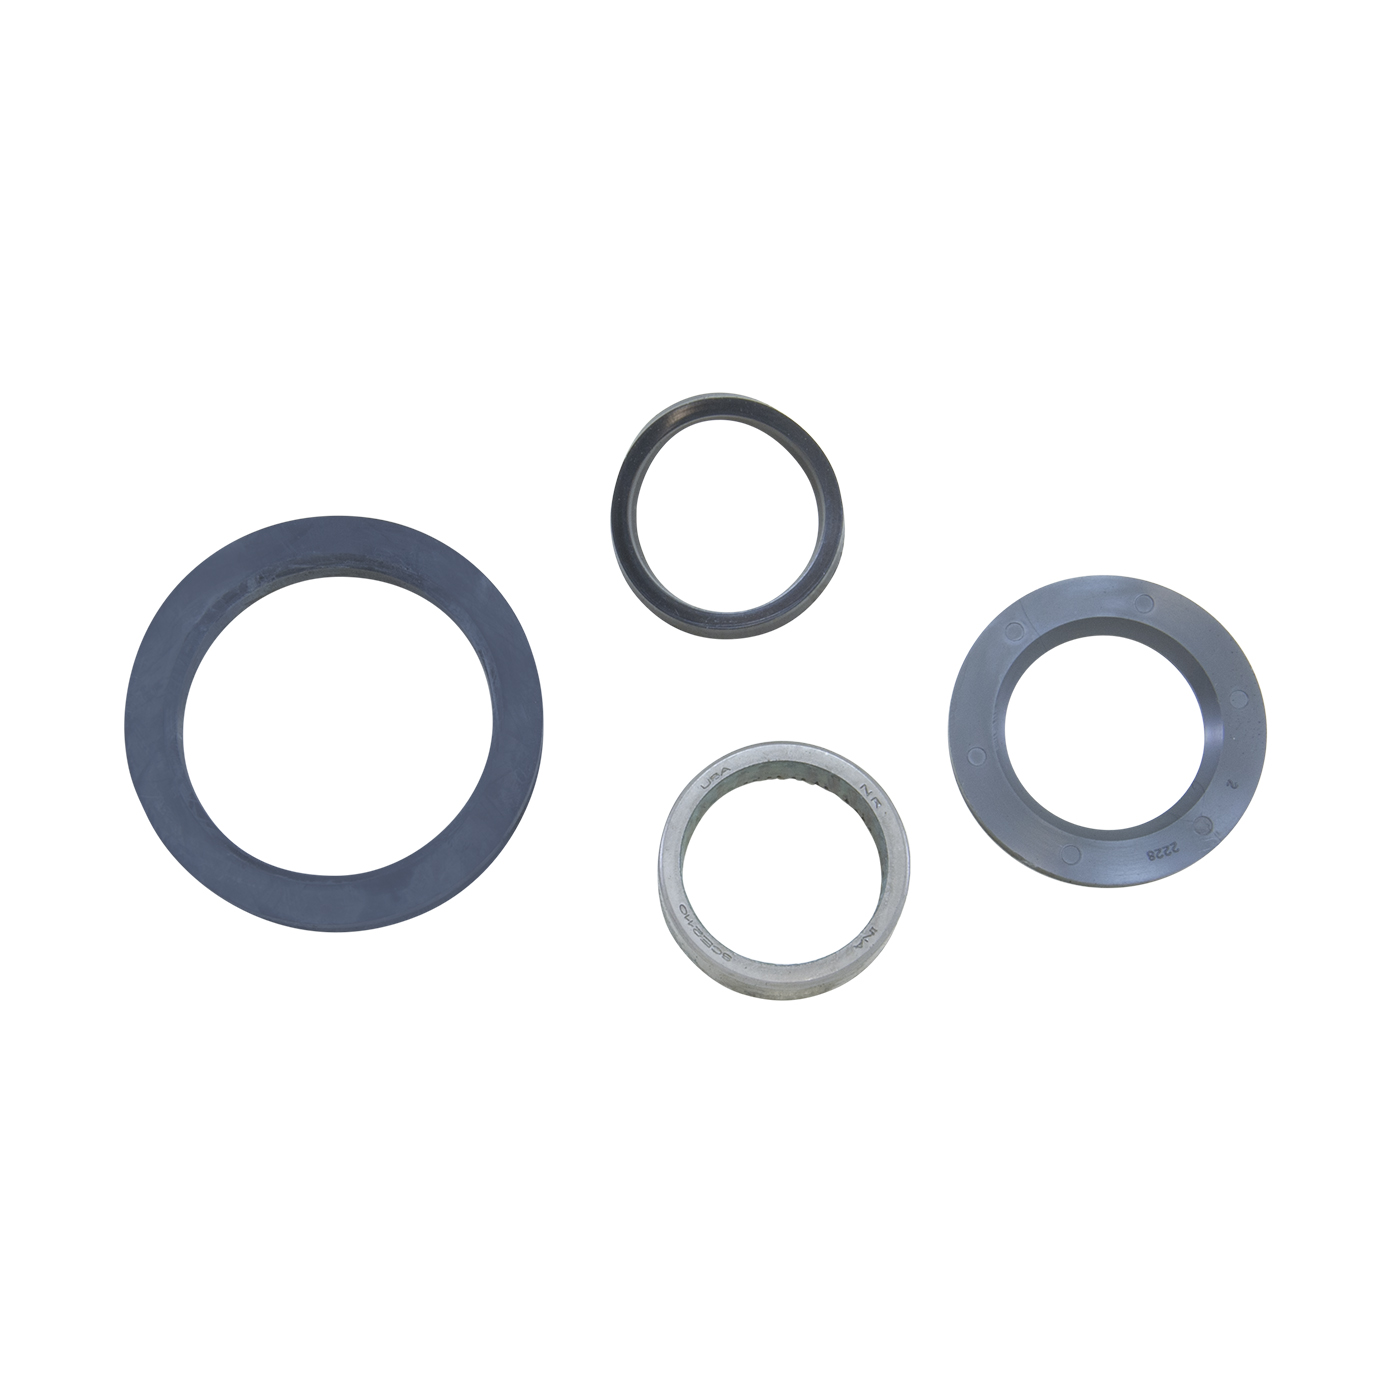 YSPSP-025 - Spindle bearing & seal kit for Dana 30, Dana 44 & GM 8.5